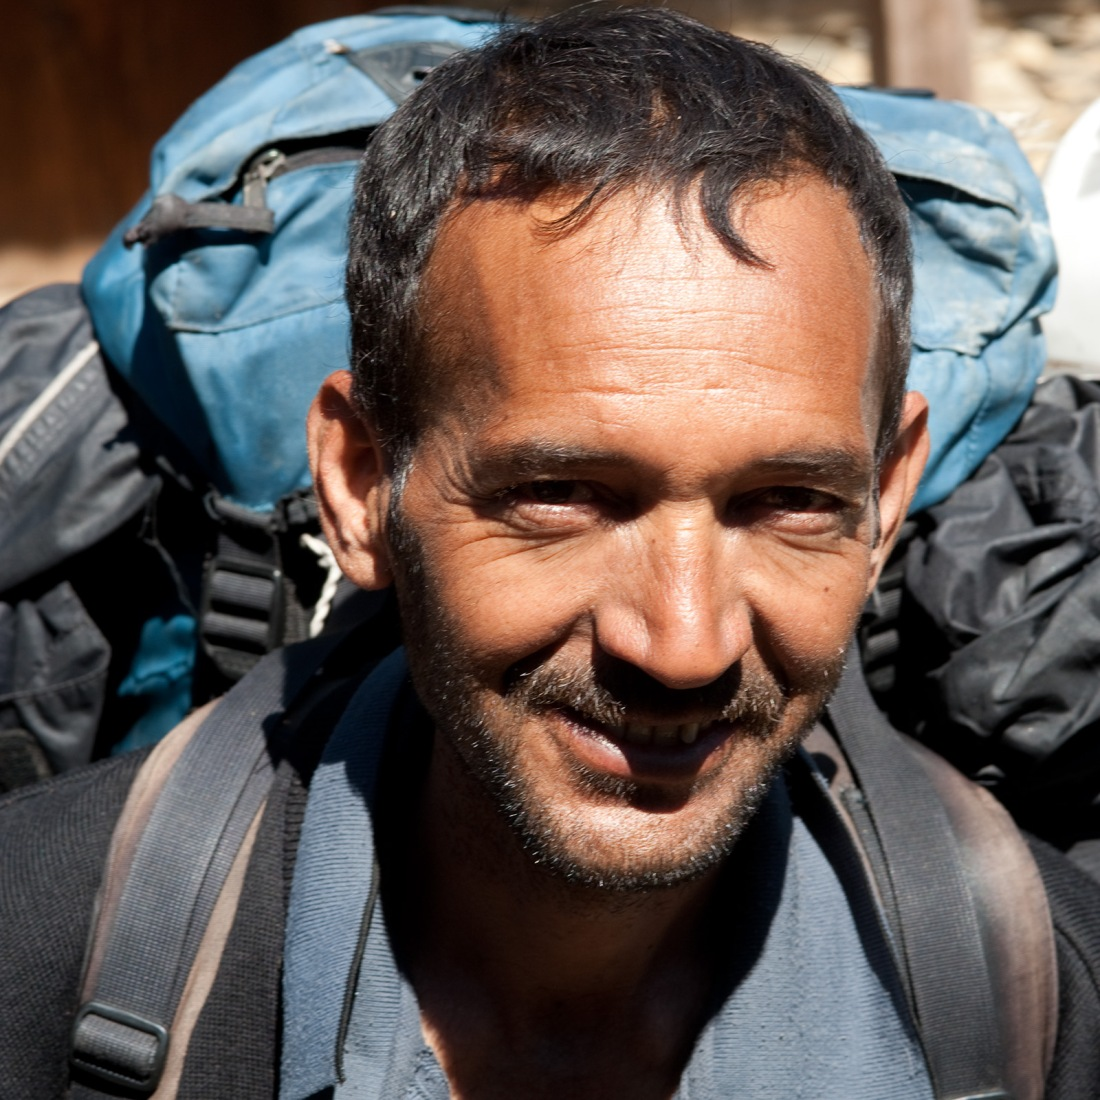 Ajay, our guide, on the way to Rees, Uttarakhand, India. Trek Day 21